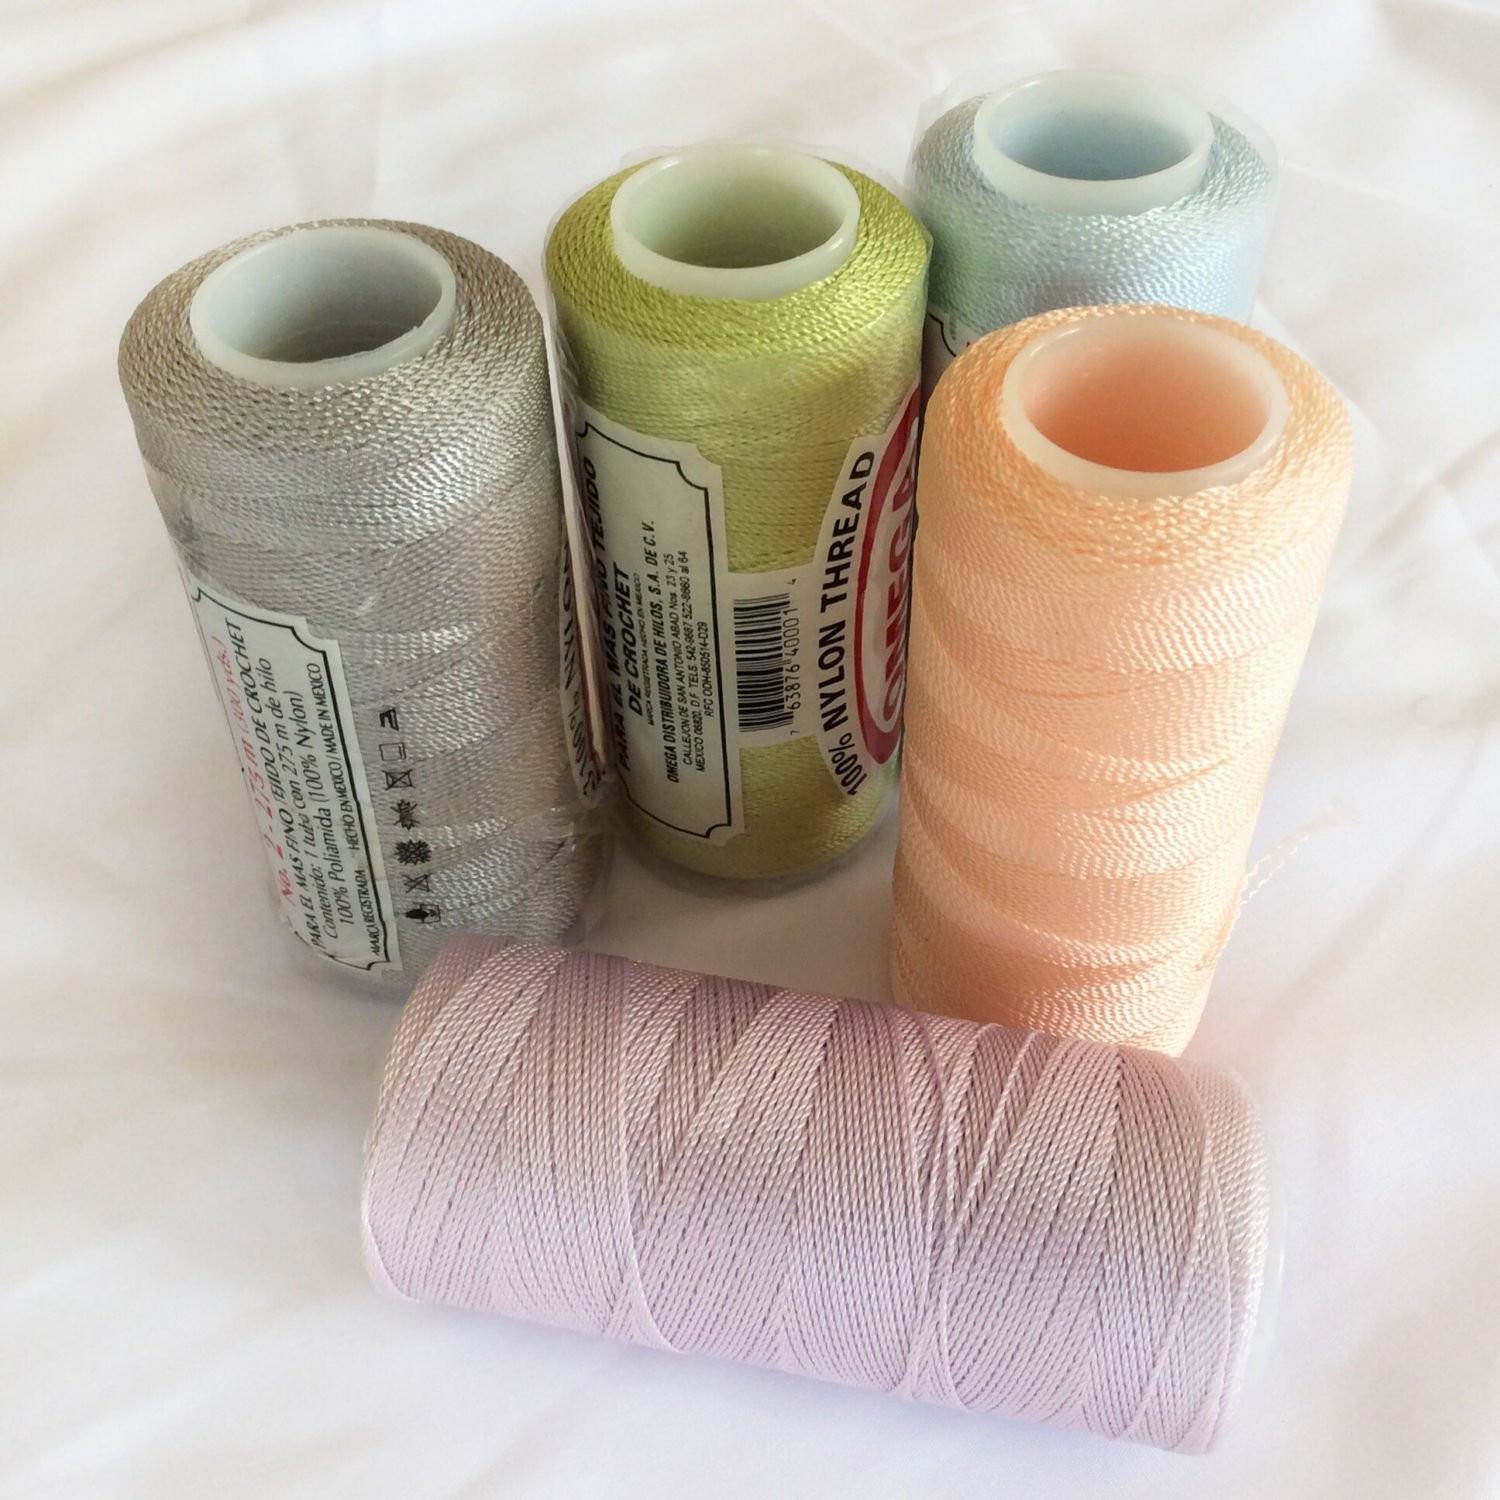 Nylon Crochet Thread Inspirational 5 assorted Nylon Thread Crochet Thread Nylon Knitters Of Wonderful 41 Pics Nylon Crochet Thread